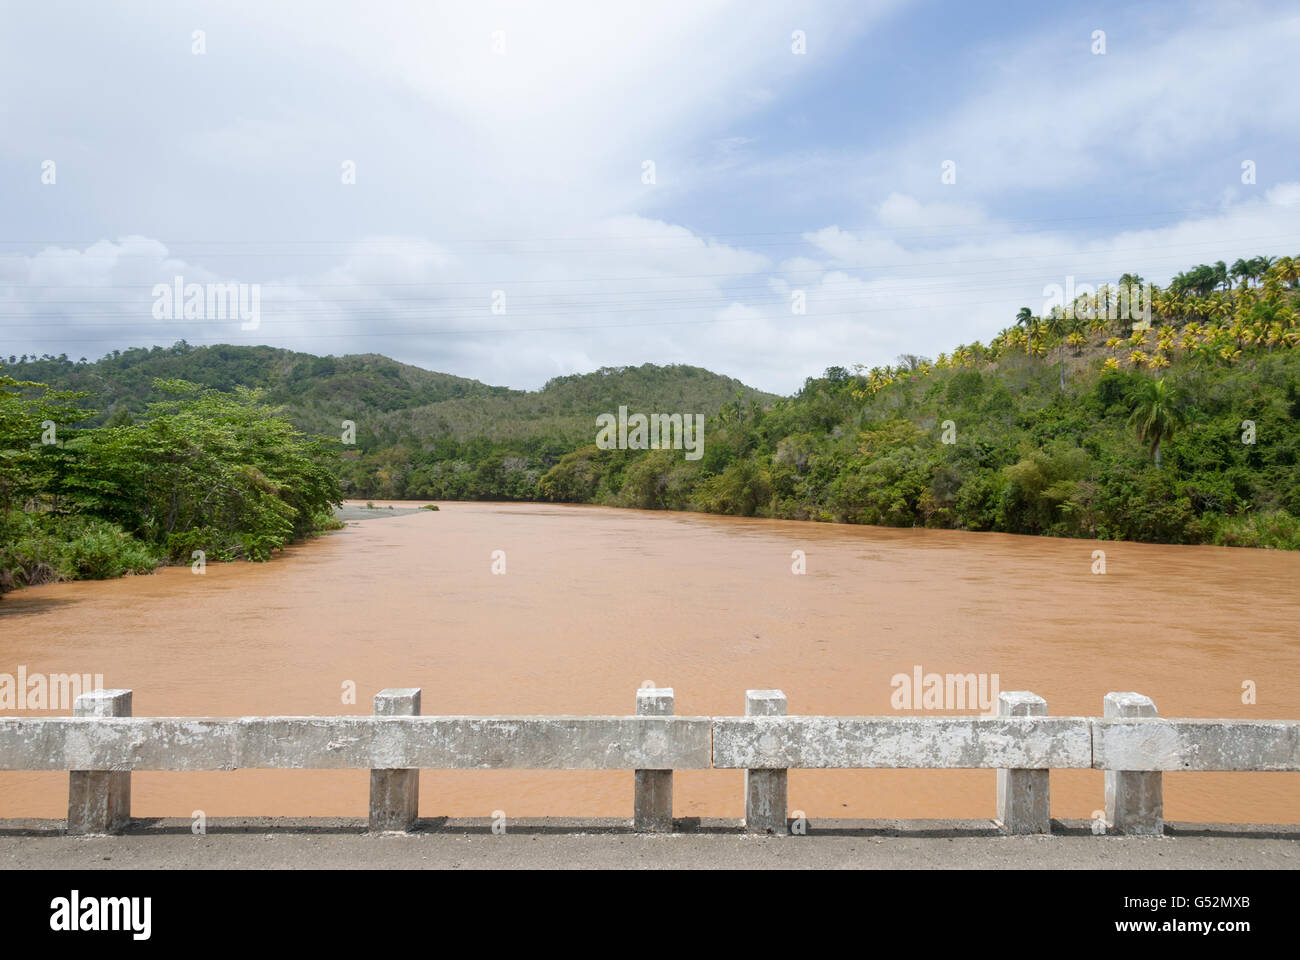 Cuba, Guantánamo, Paso de Toa, On the bridge over the Toa River in Paso de Toa - Stock Image